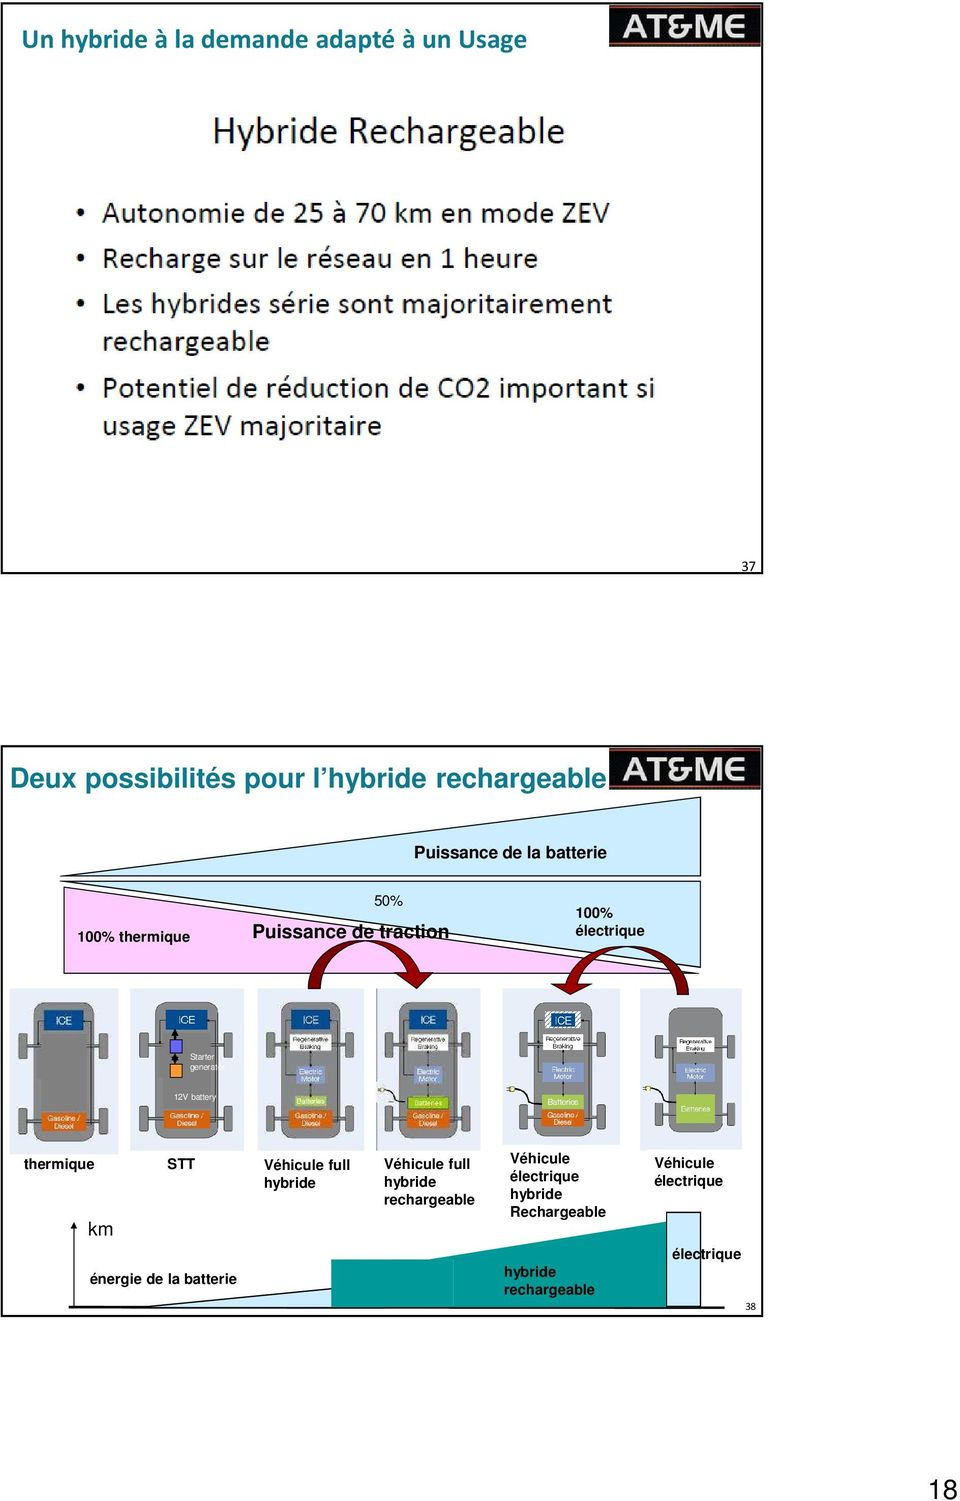 12V battery thermique STT Véhicule full hybride km Véhicule full hybride rechargeable Véhicule